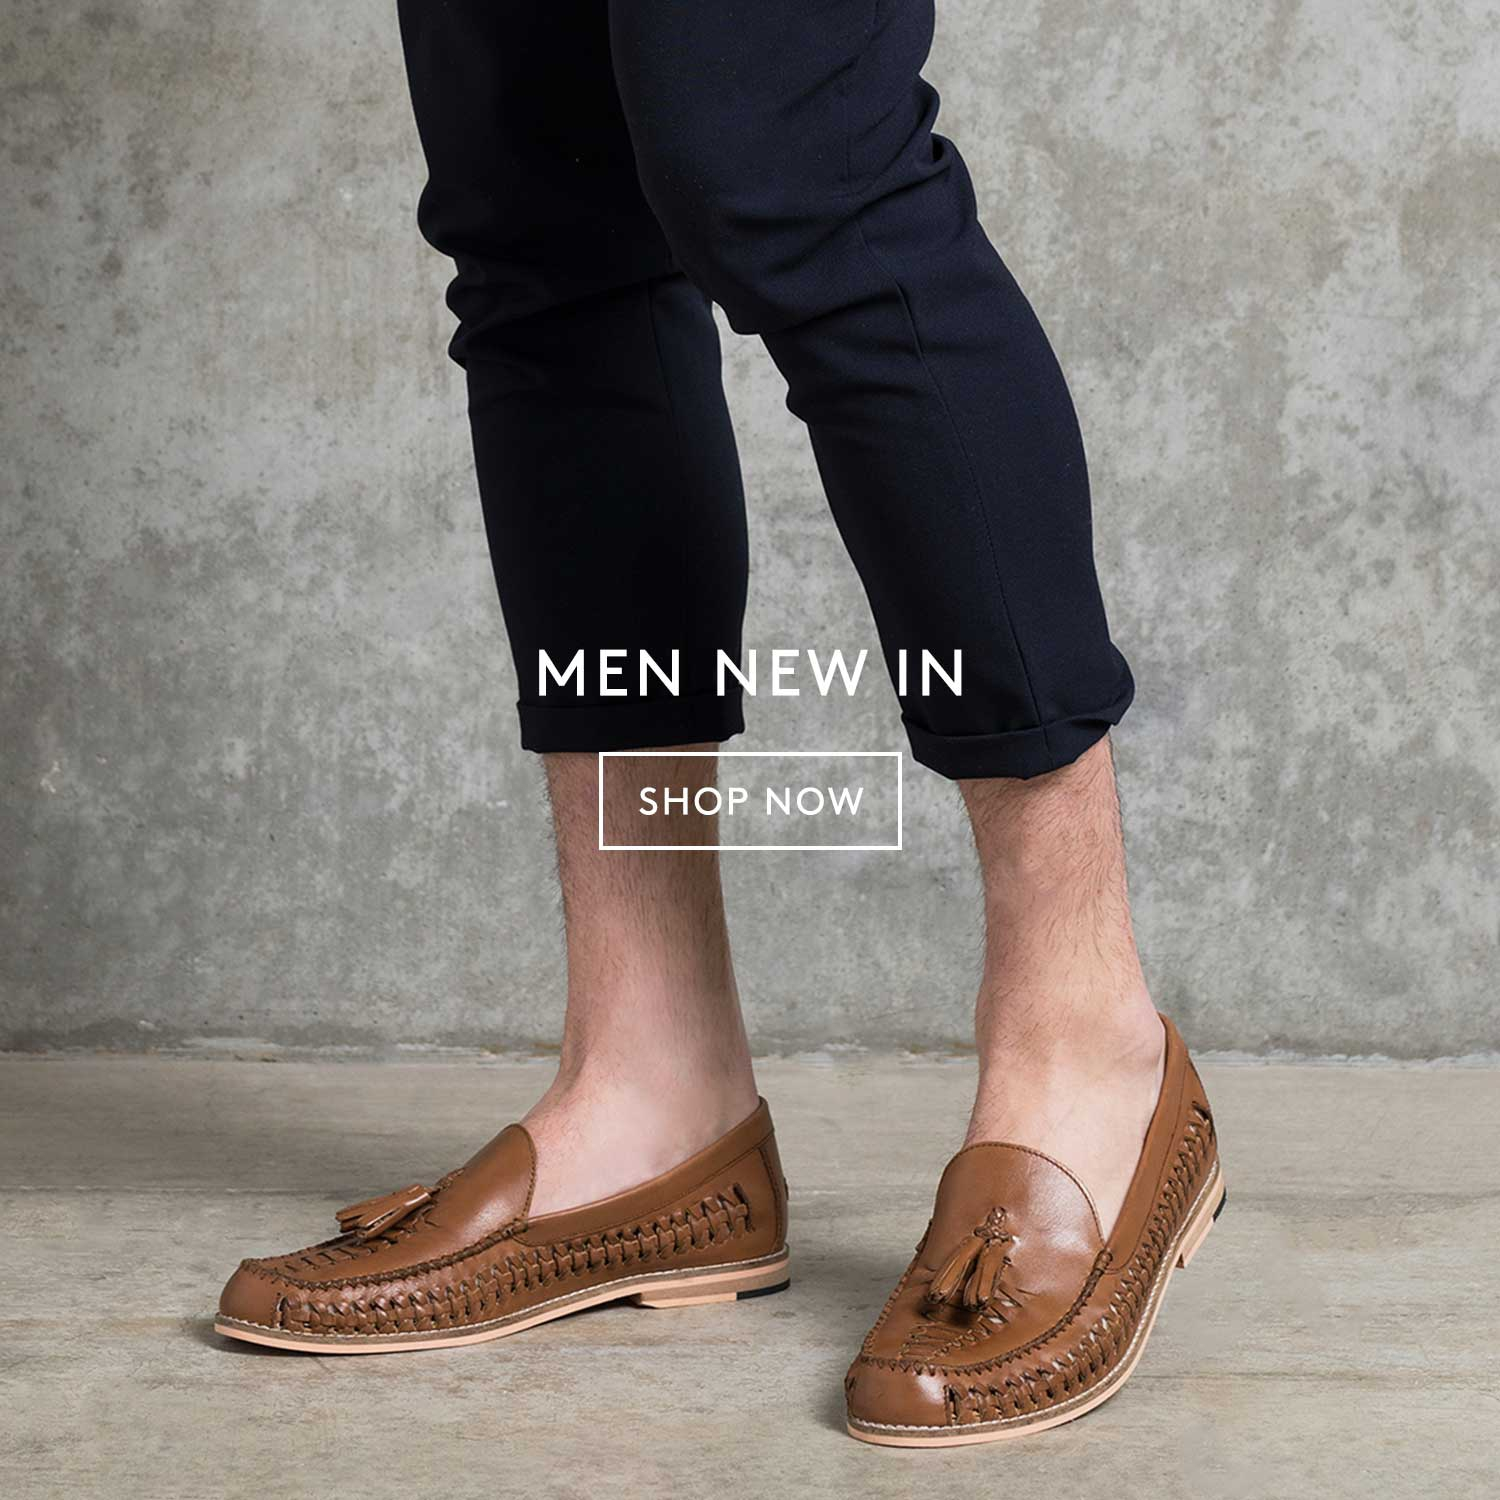 MEN NEW IN